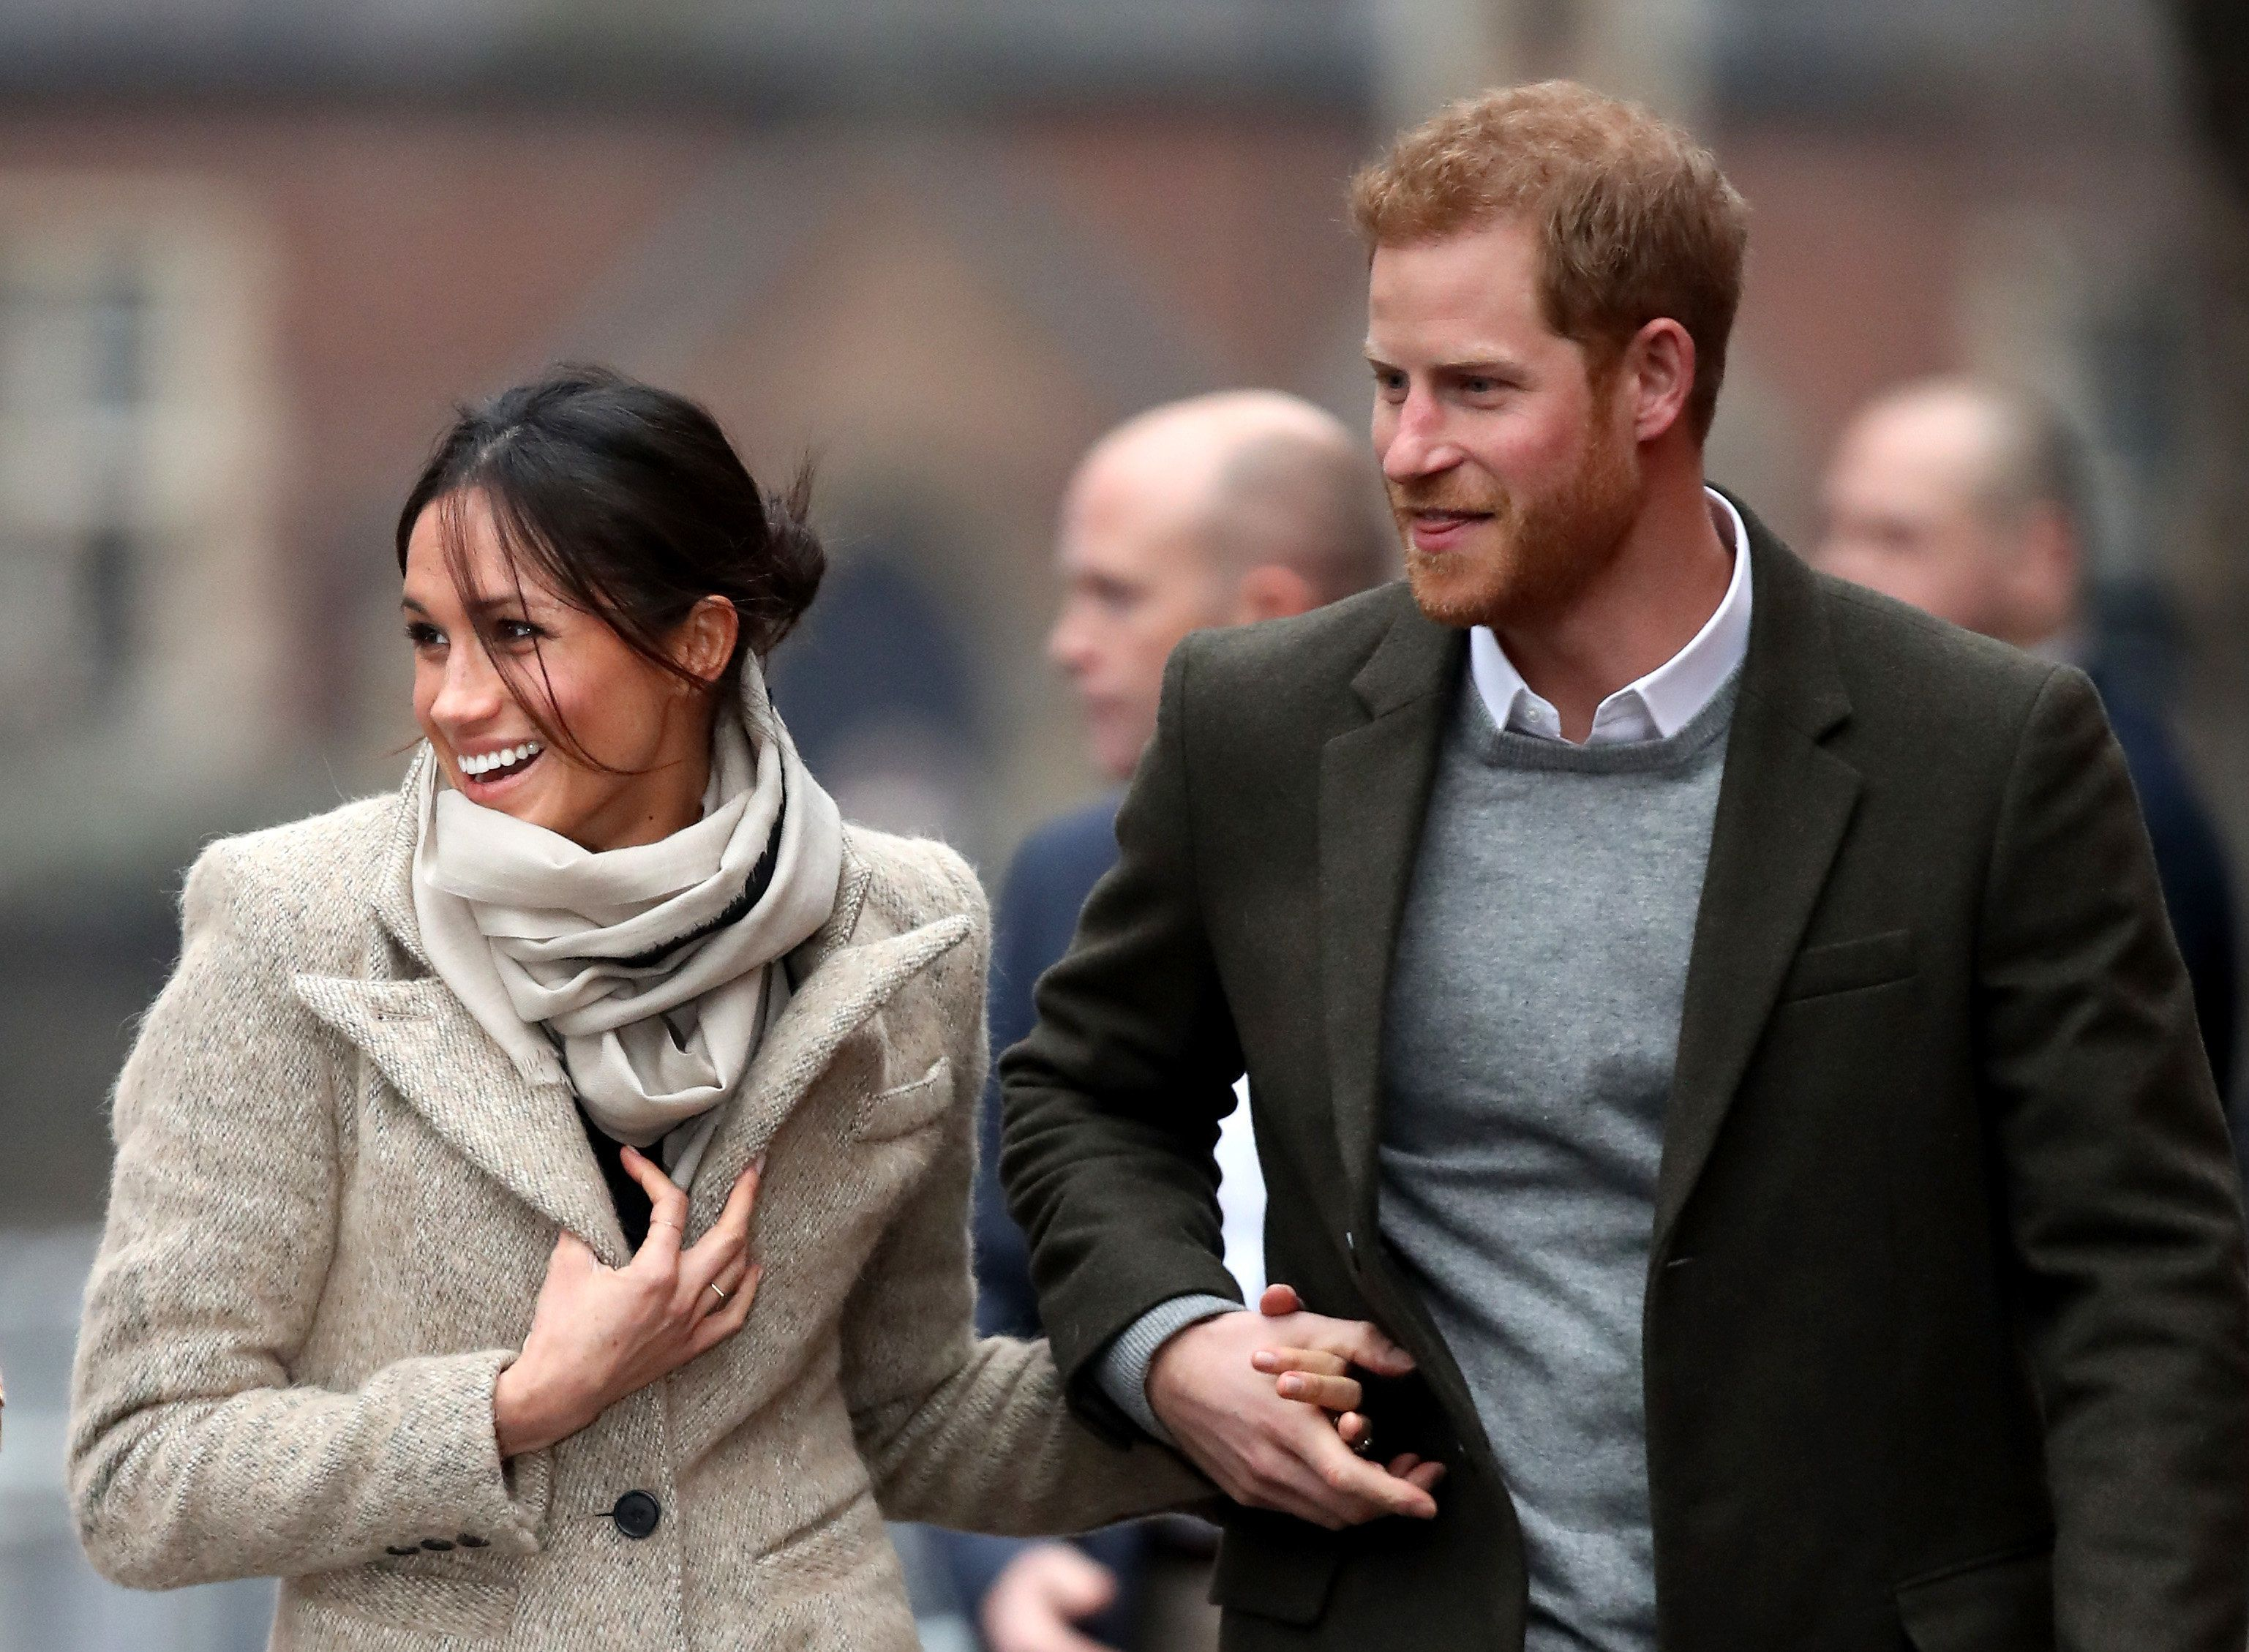 LONDON, ENGLAND - JANUARY 09:  Prince Harry (R) and his fiancee Meghan Markle visit Reprezent 107.3FM on January 9, 2018 in London, England. The Reprezent training programme was established in Peckham in 2008, in response to the alarming rise in knife crime, to help young people develop and socialise through radio.  (Photo by Chris Jackson/Getty Images)